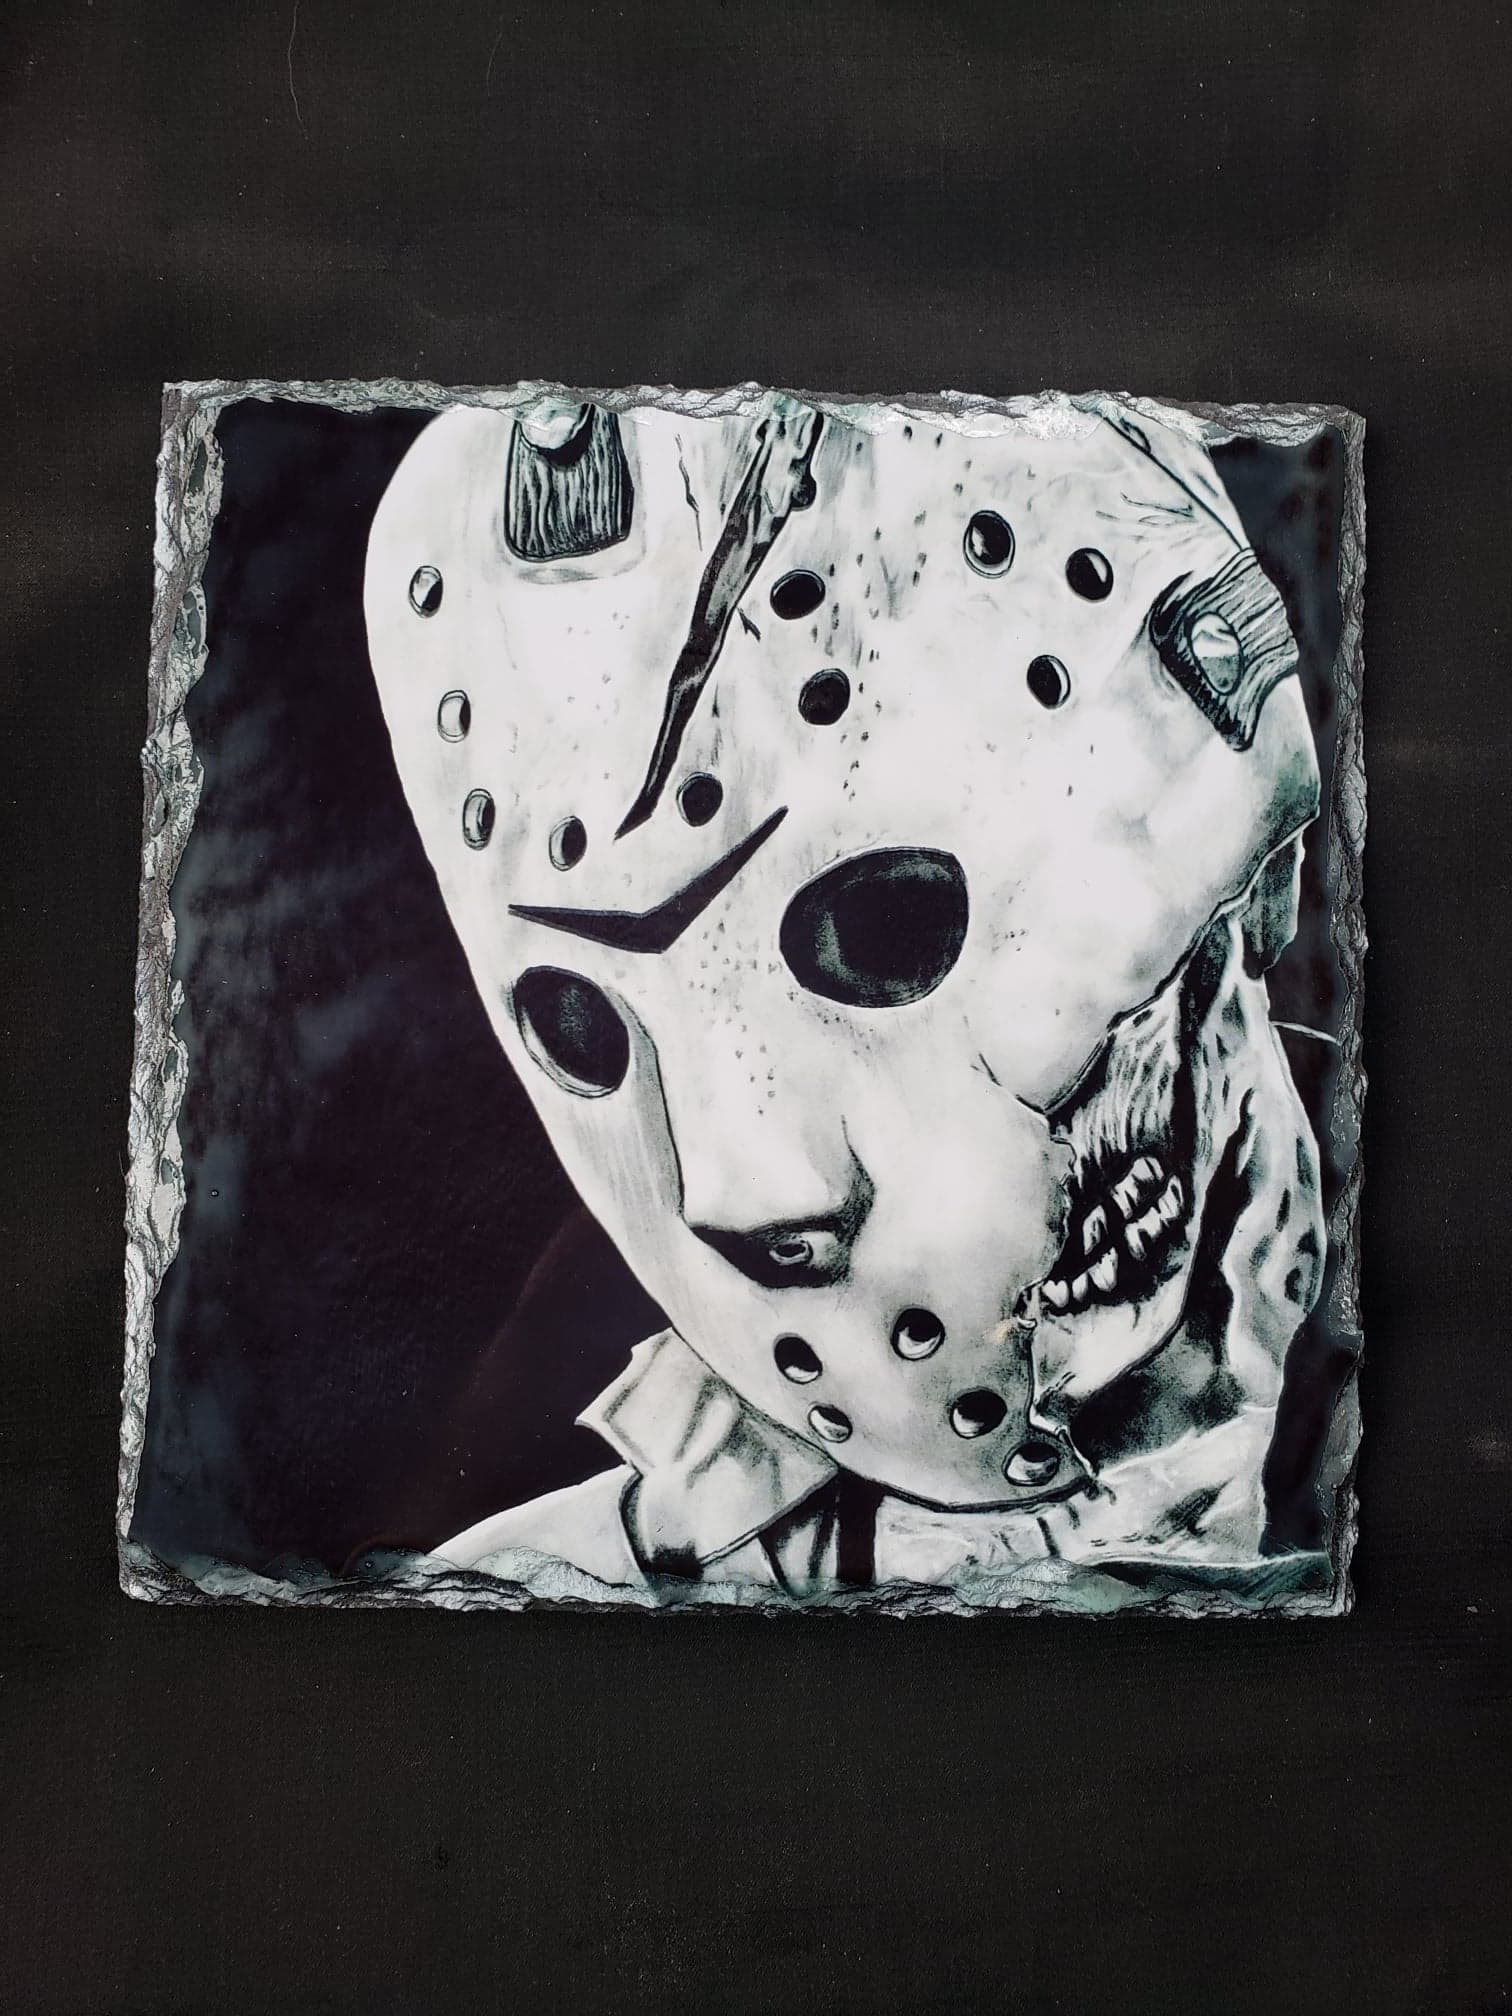 Jason Voorhees Friday the 13th Print on Stone Tile